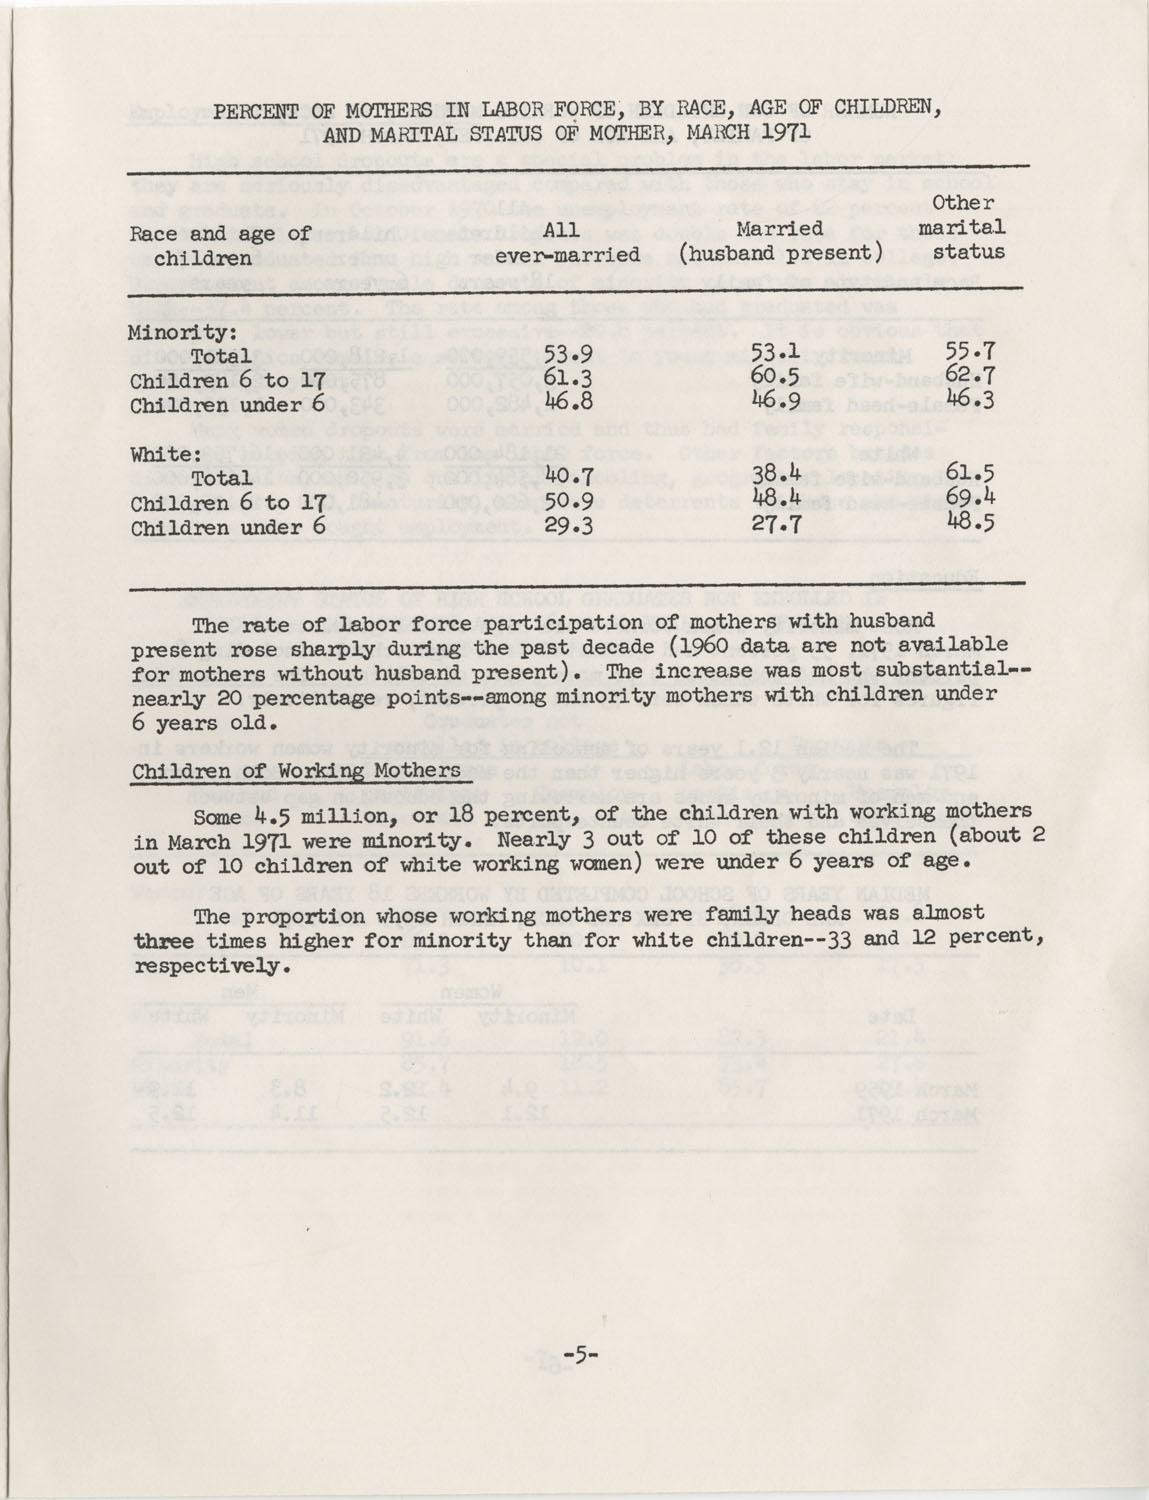 Facts on Women Workers of Minority Races, U.S. Department of Labor, June 1972, Page 5